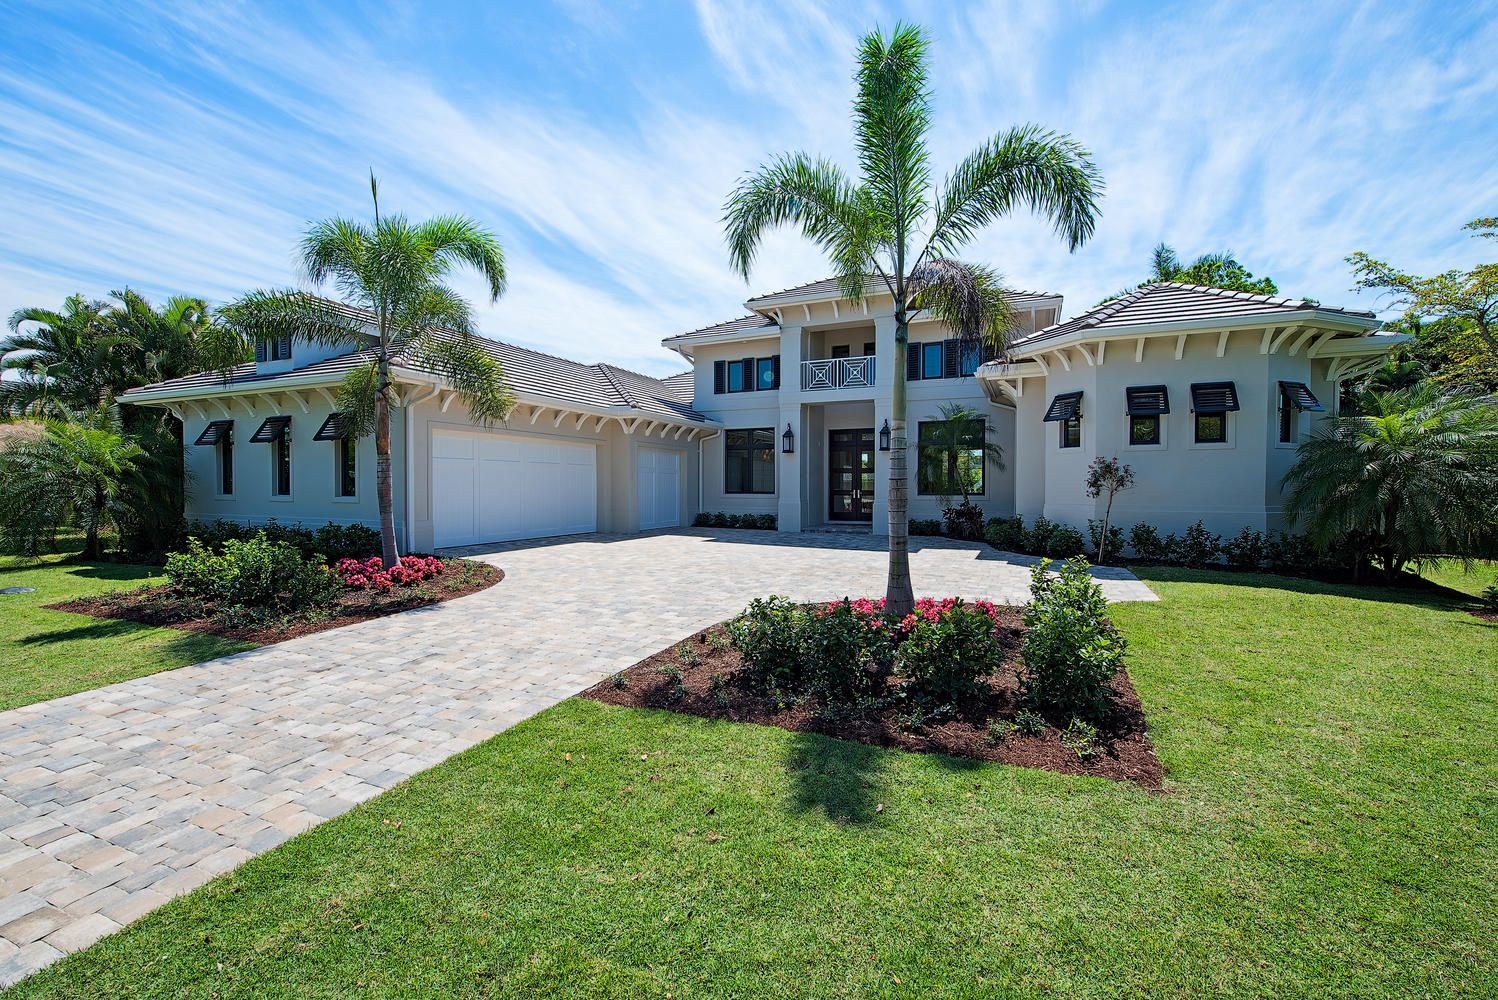 Coastal Contemporary 1 Floor Home Design Features 4 Bedrooms 4 5 Baths And A 3 Car Side Entry Garage Visit Our W Florida House Plans Florida Home House Plans